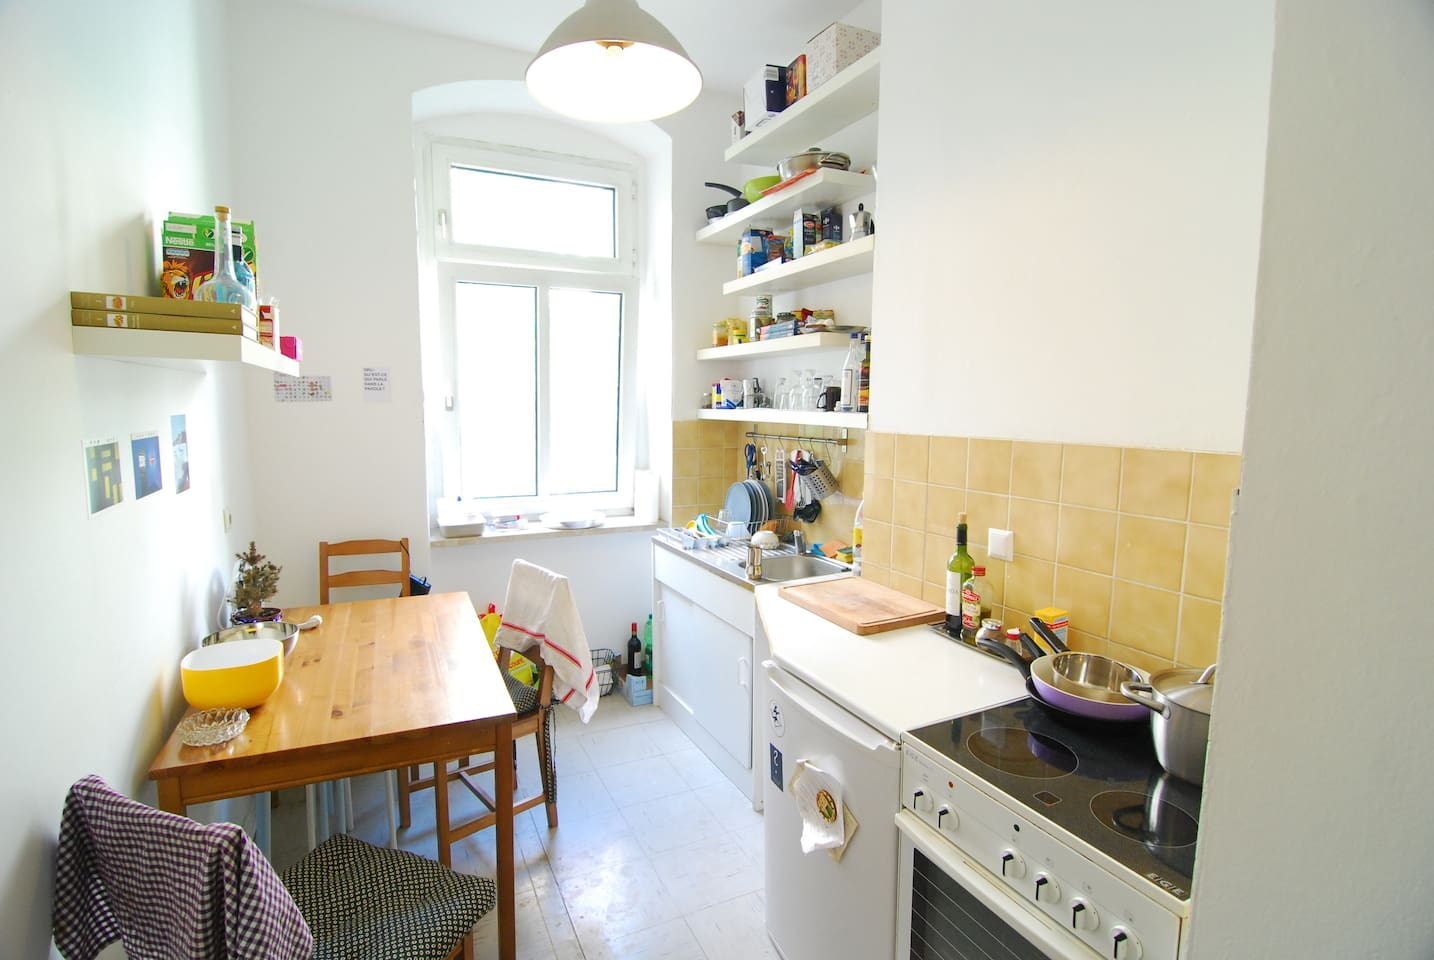 The kitchen is quite well furnished, do not hesitate to use it for cooking !